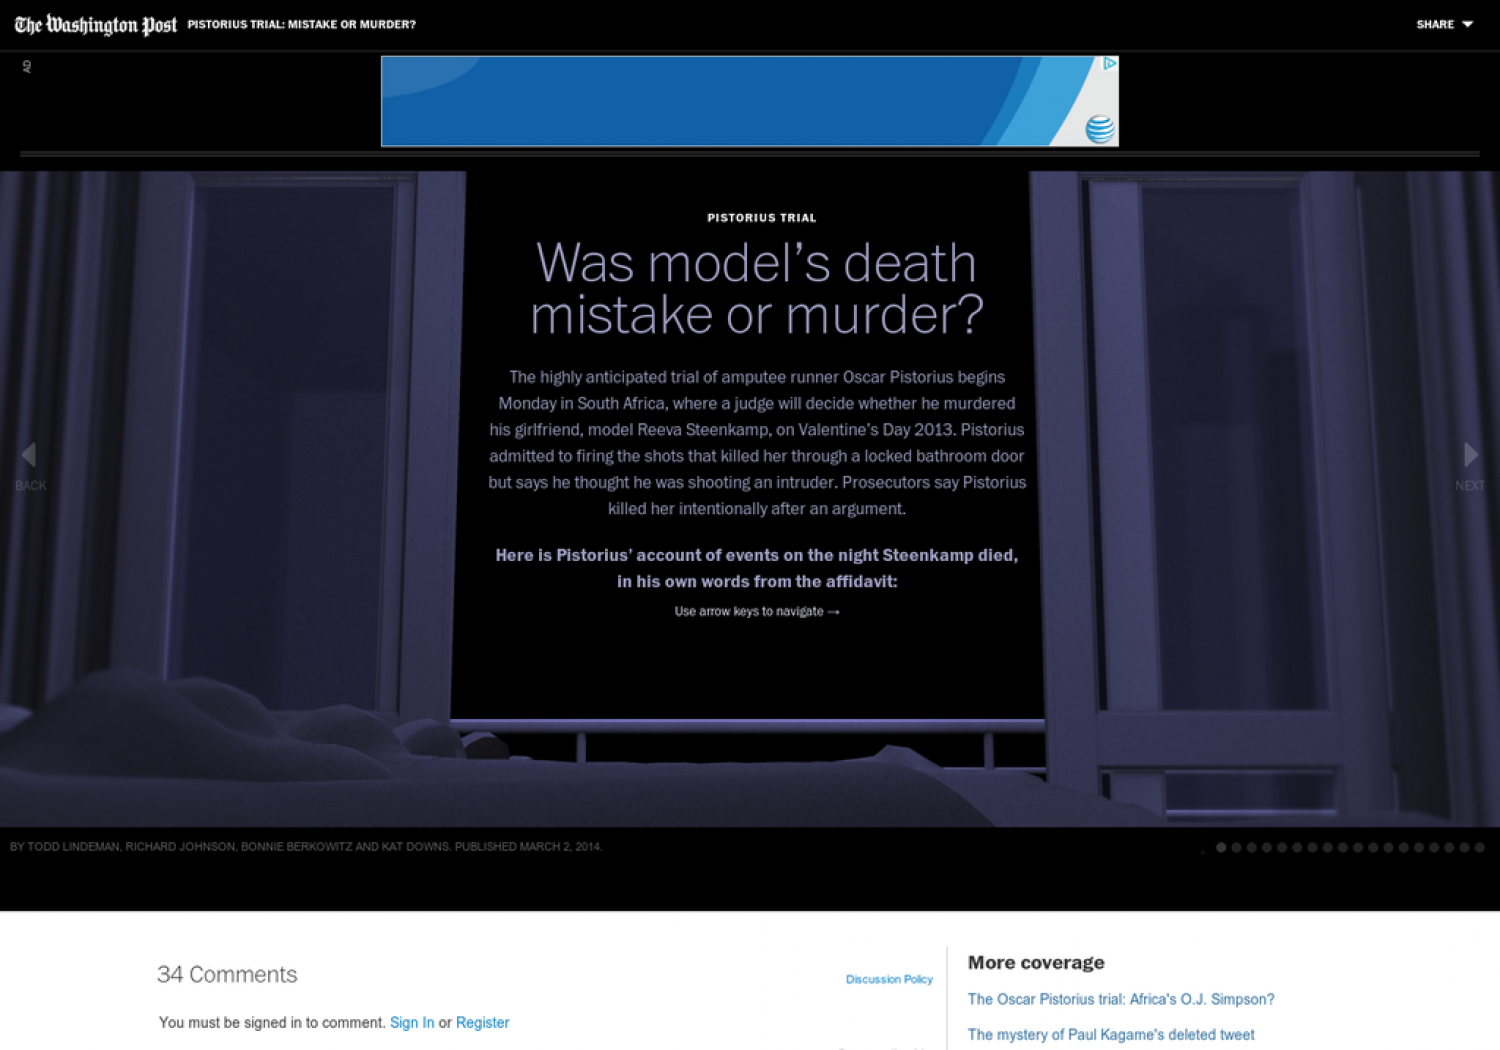 Pistorius Trial: Was Model's Death Mistake or Murder? Infographic